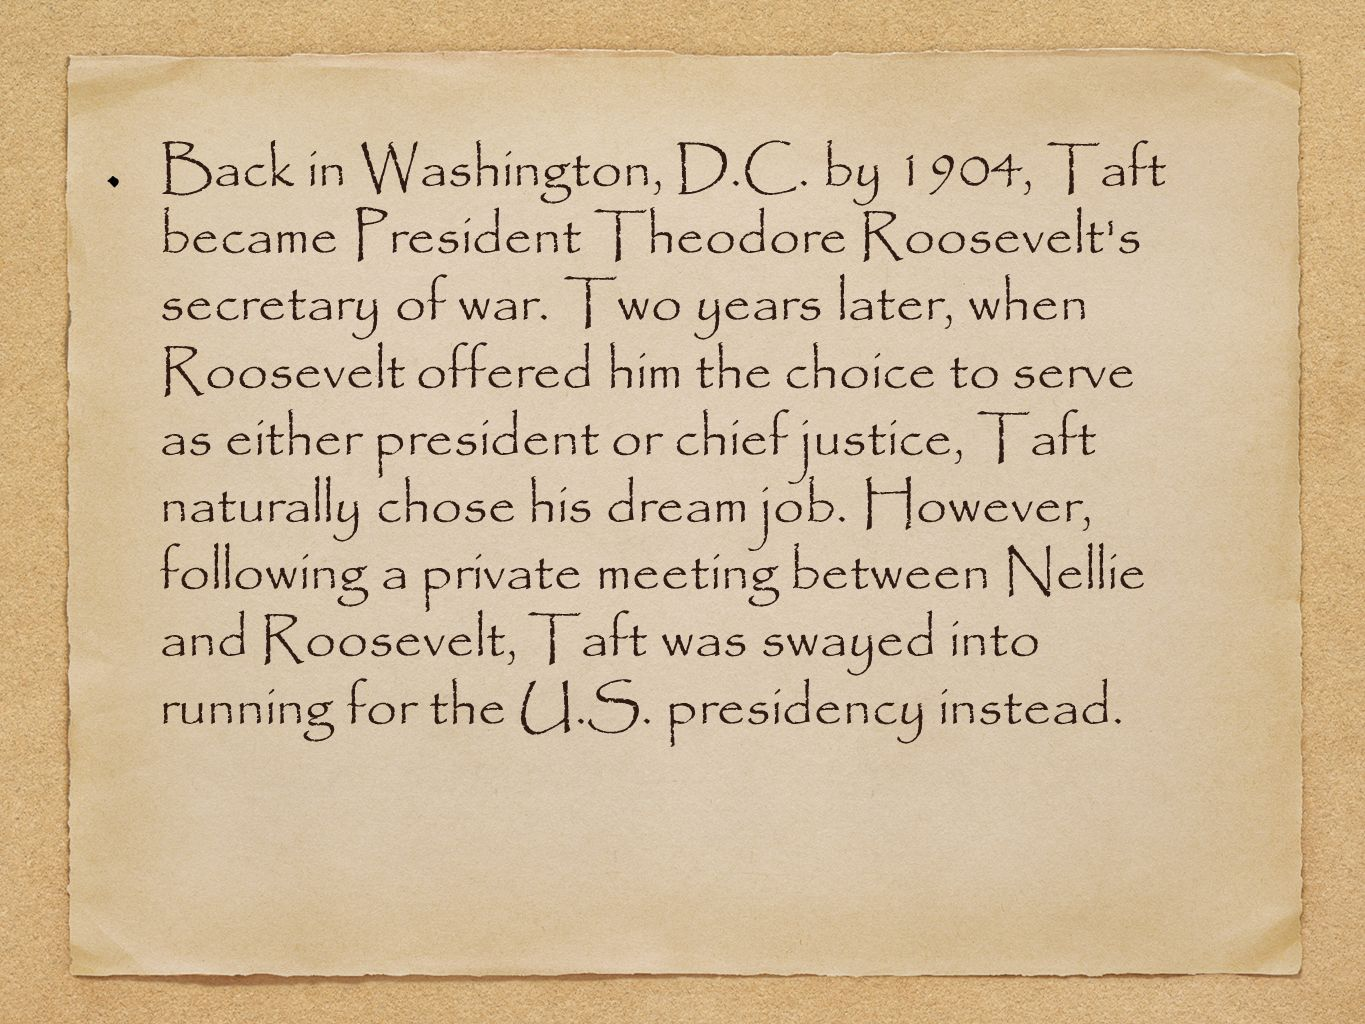 Taft had an easy victory in the November 1908 election, sliding in on the popularity and endorsement of predecessor Theodore Roosevelt.